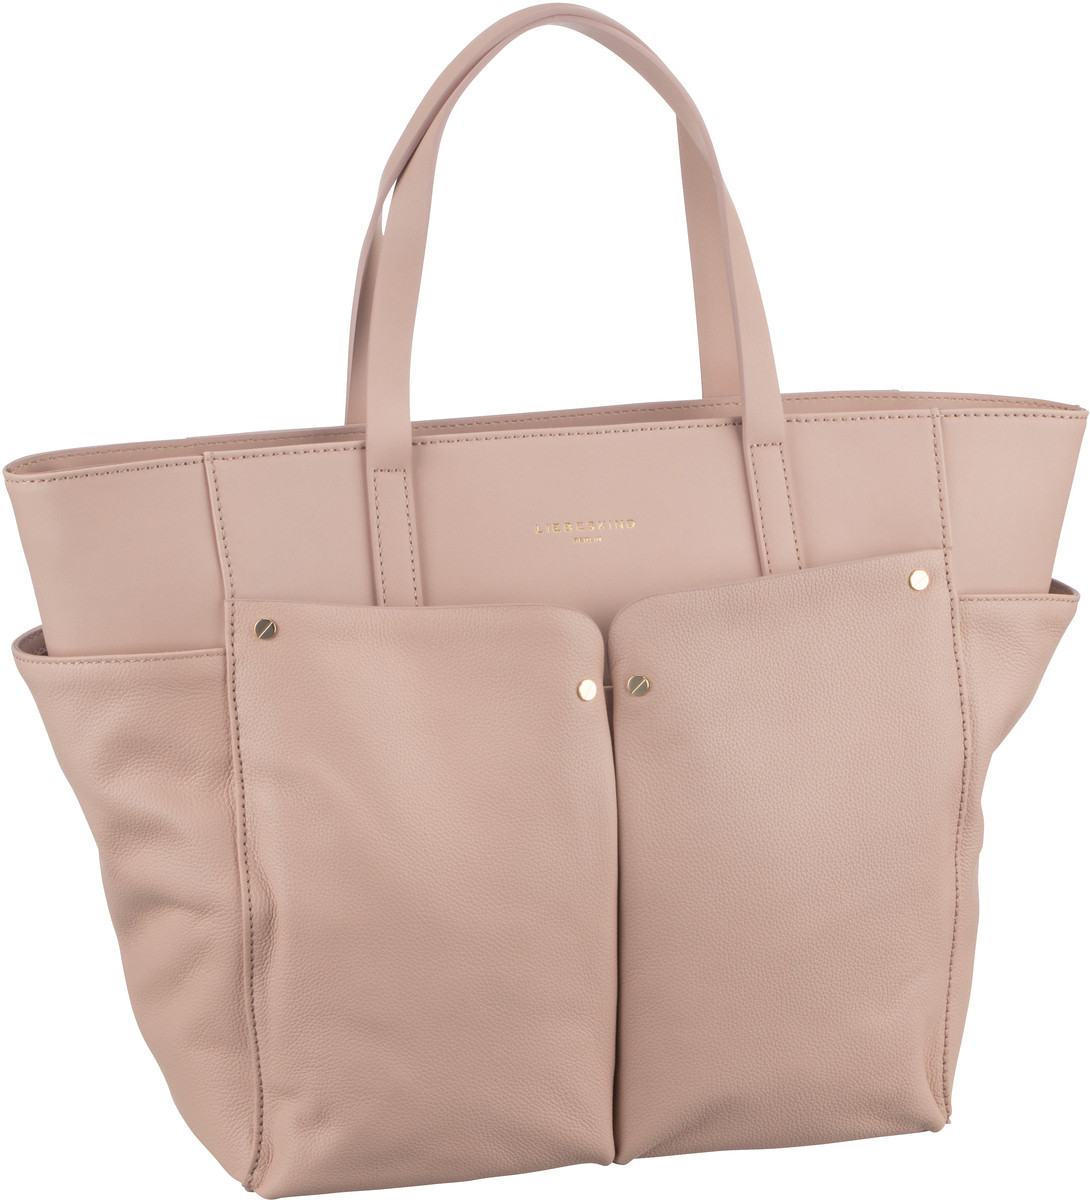 Shopper für Frauen - Liebeskind Berlin Shopper Duo Shopper L Dusty Rose  - Onlineshop Taschenkaufhaus